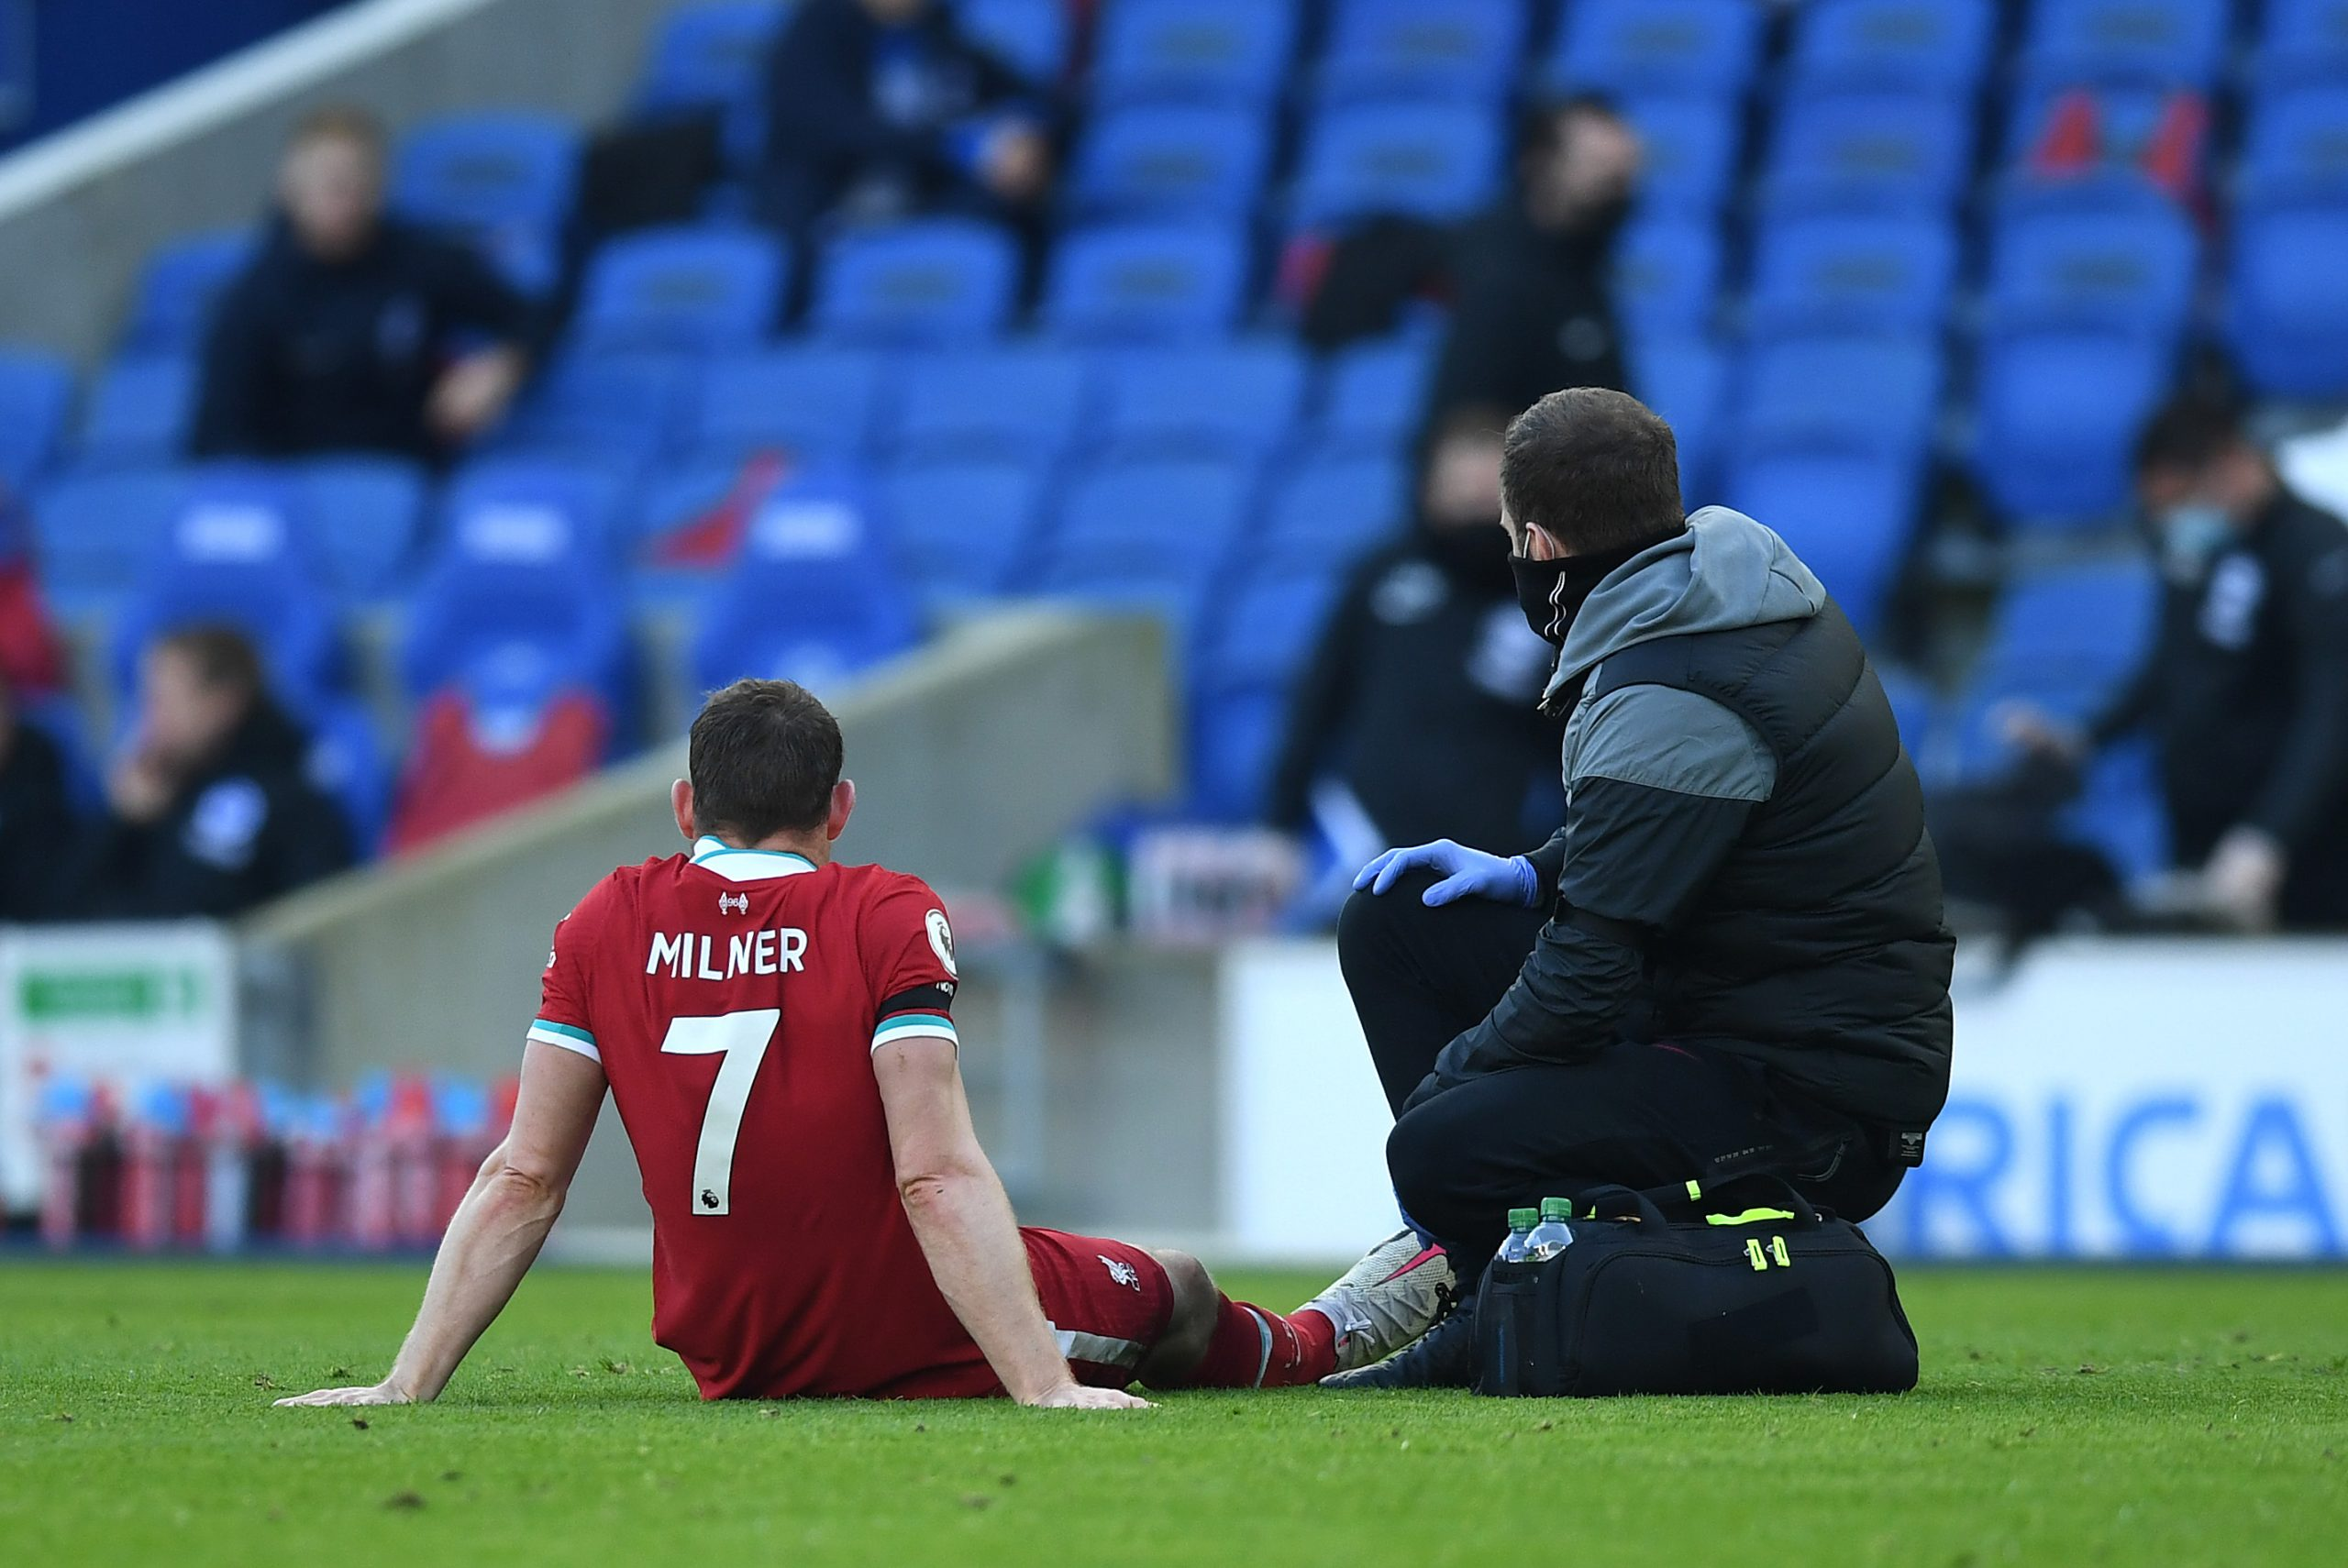 James Milner was forced off with a hamstring injury in the 73rd against Brighton and Hove Albion on Saturday. (GETTY Images)